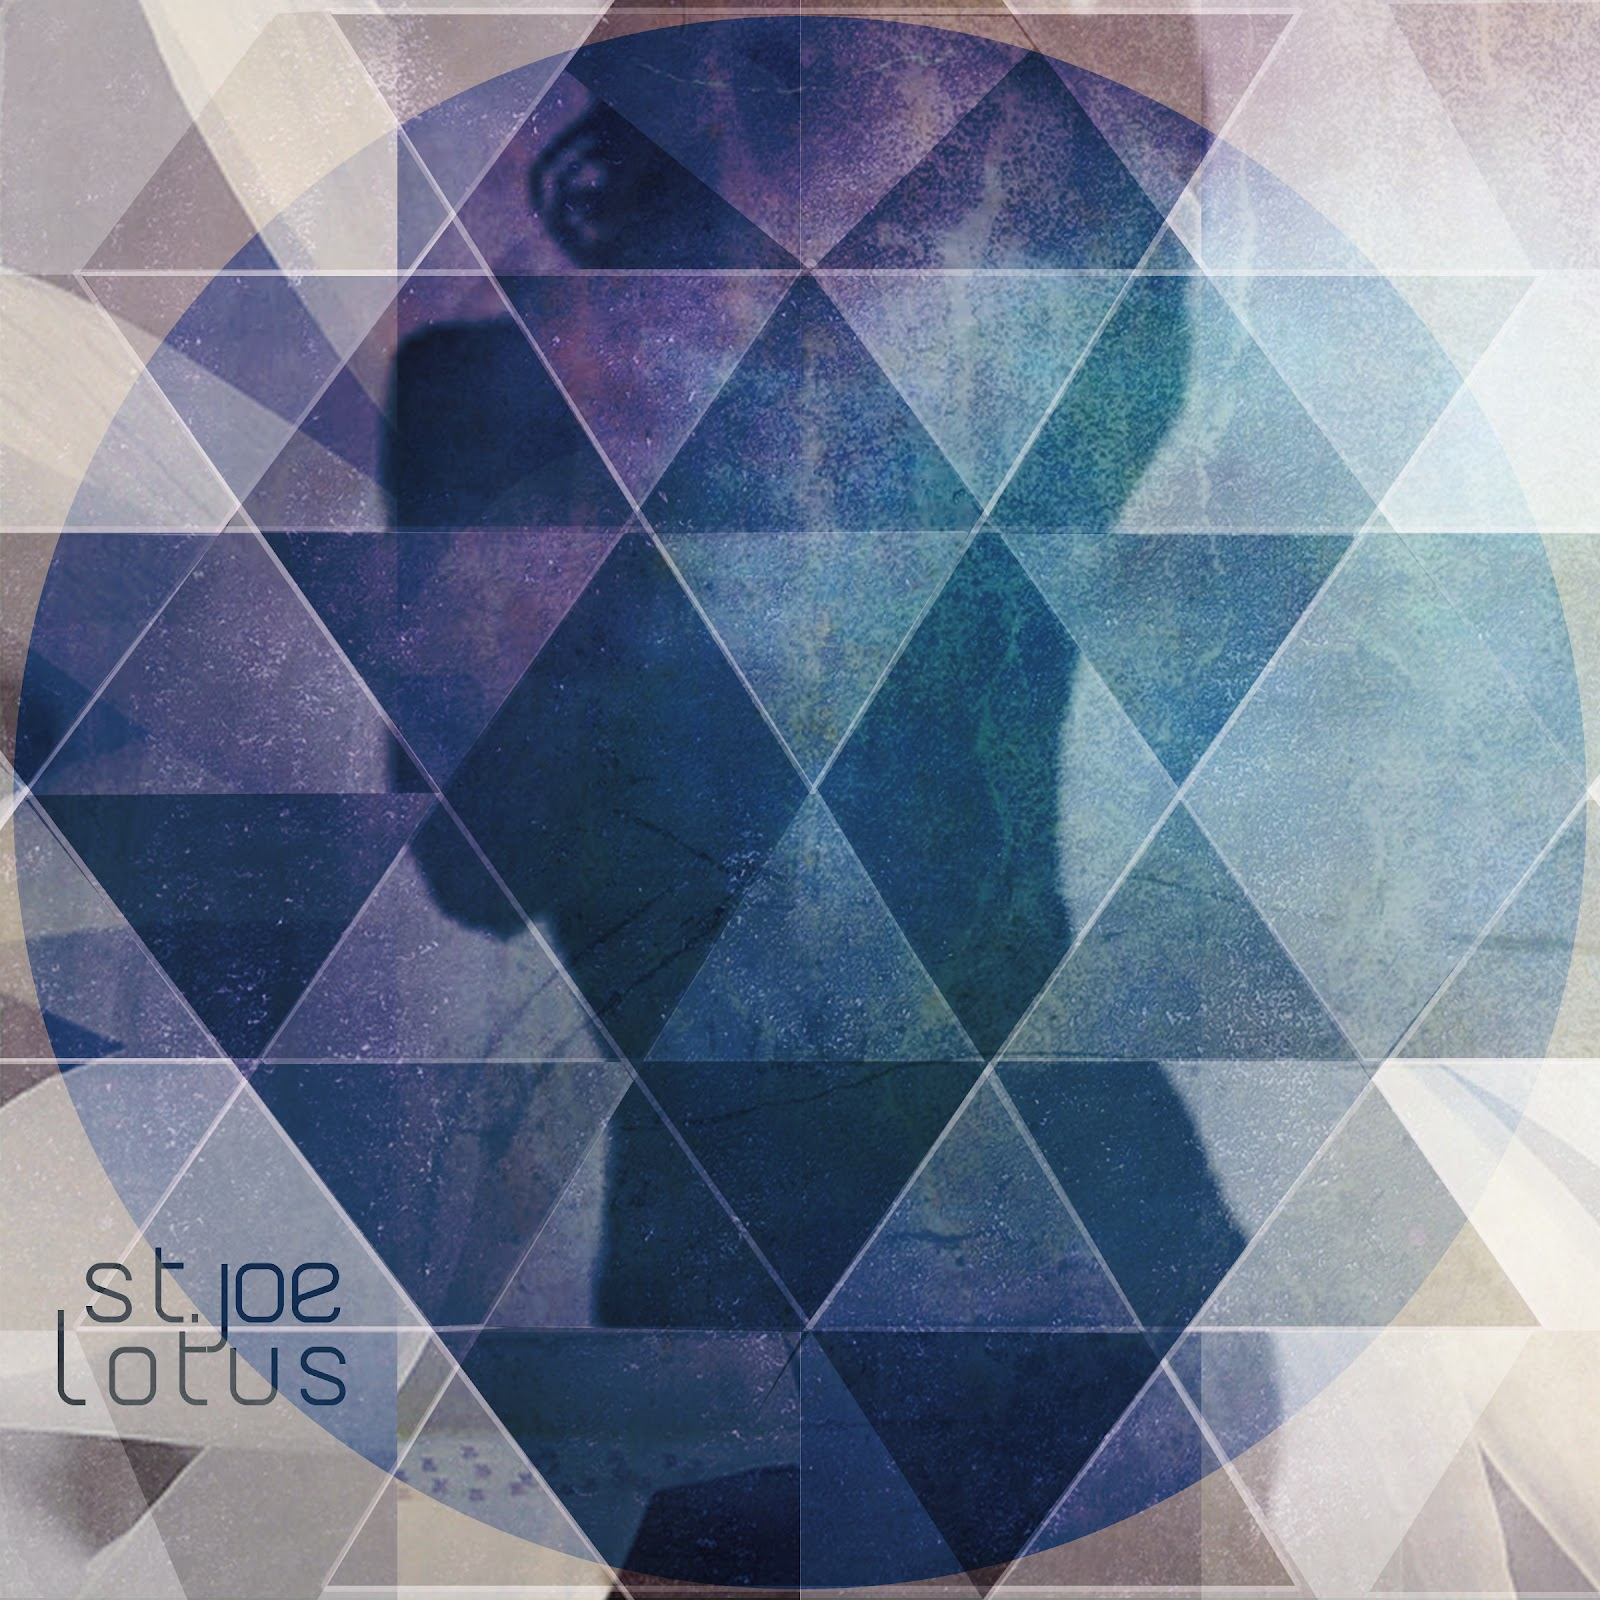 St. Joe Louis & Flying Lotus - St. Joe Lotus (2012)